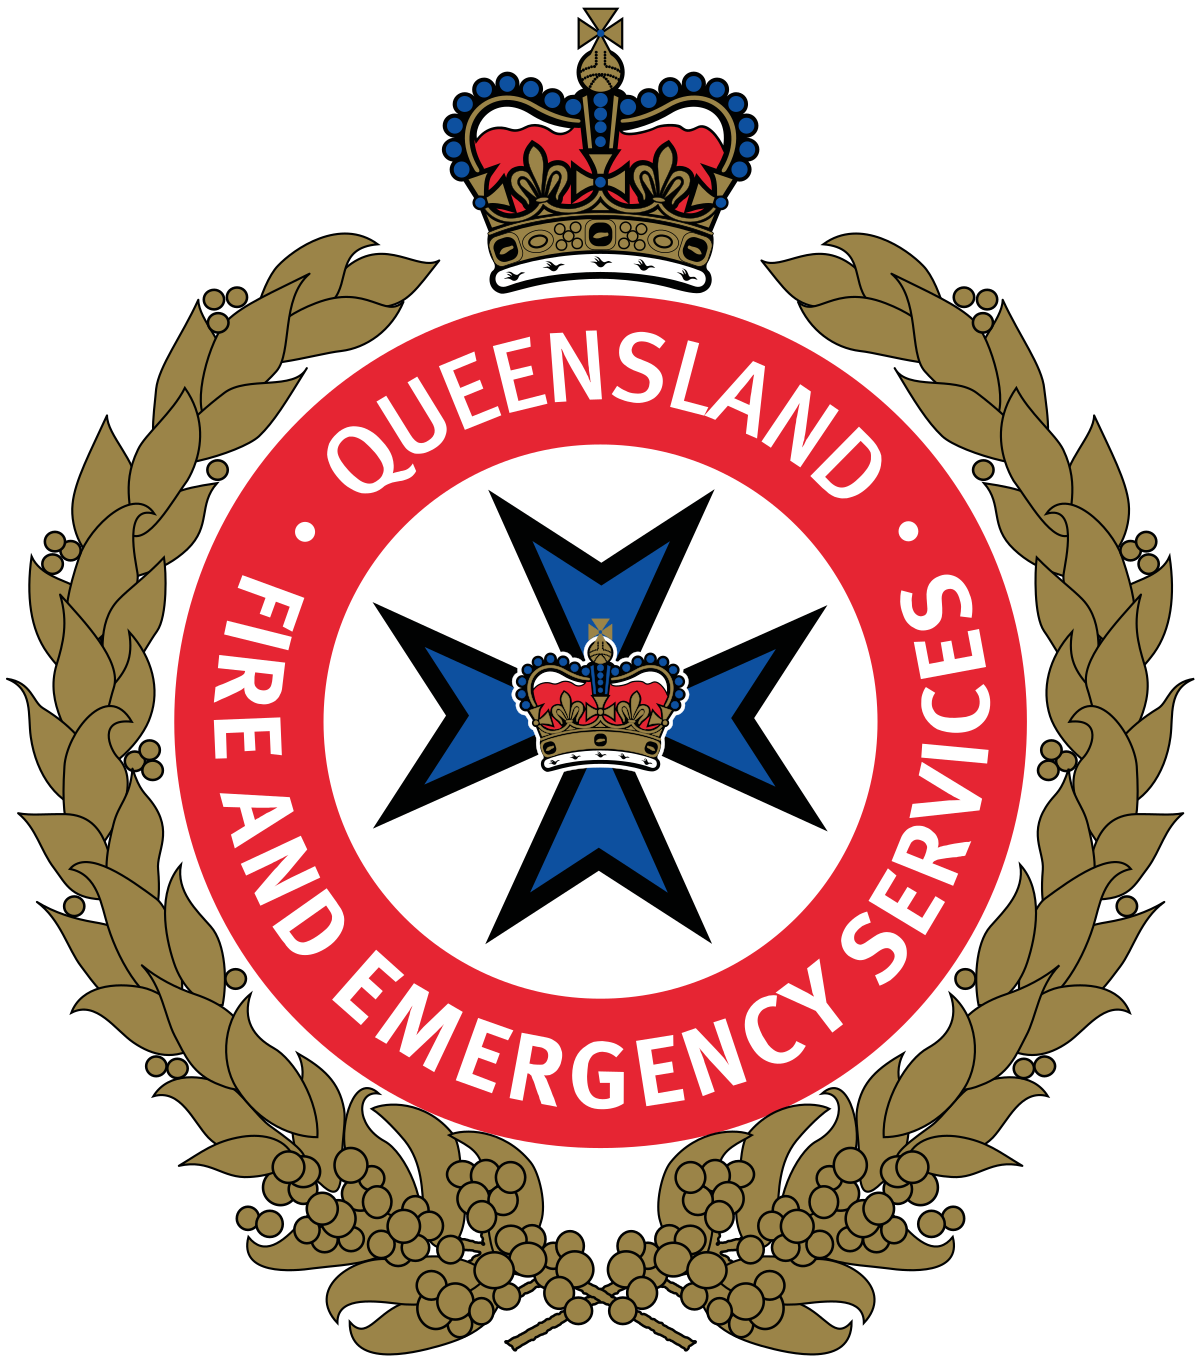 Firefighter clipart water rescue. Queensland fire and emergency